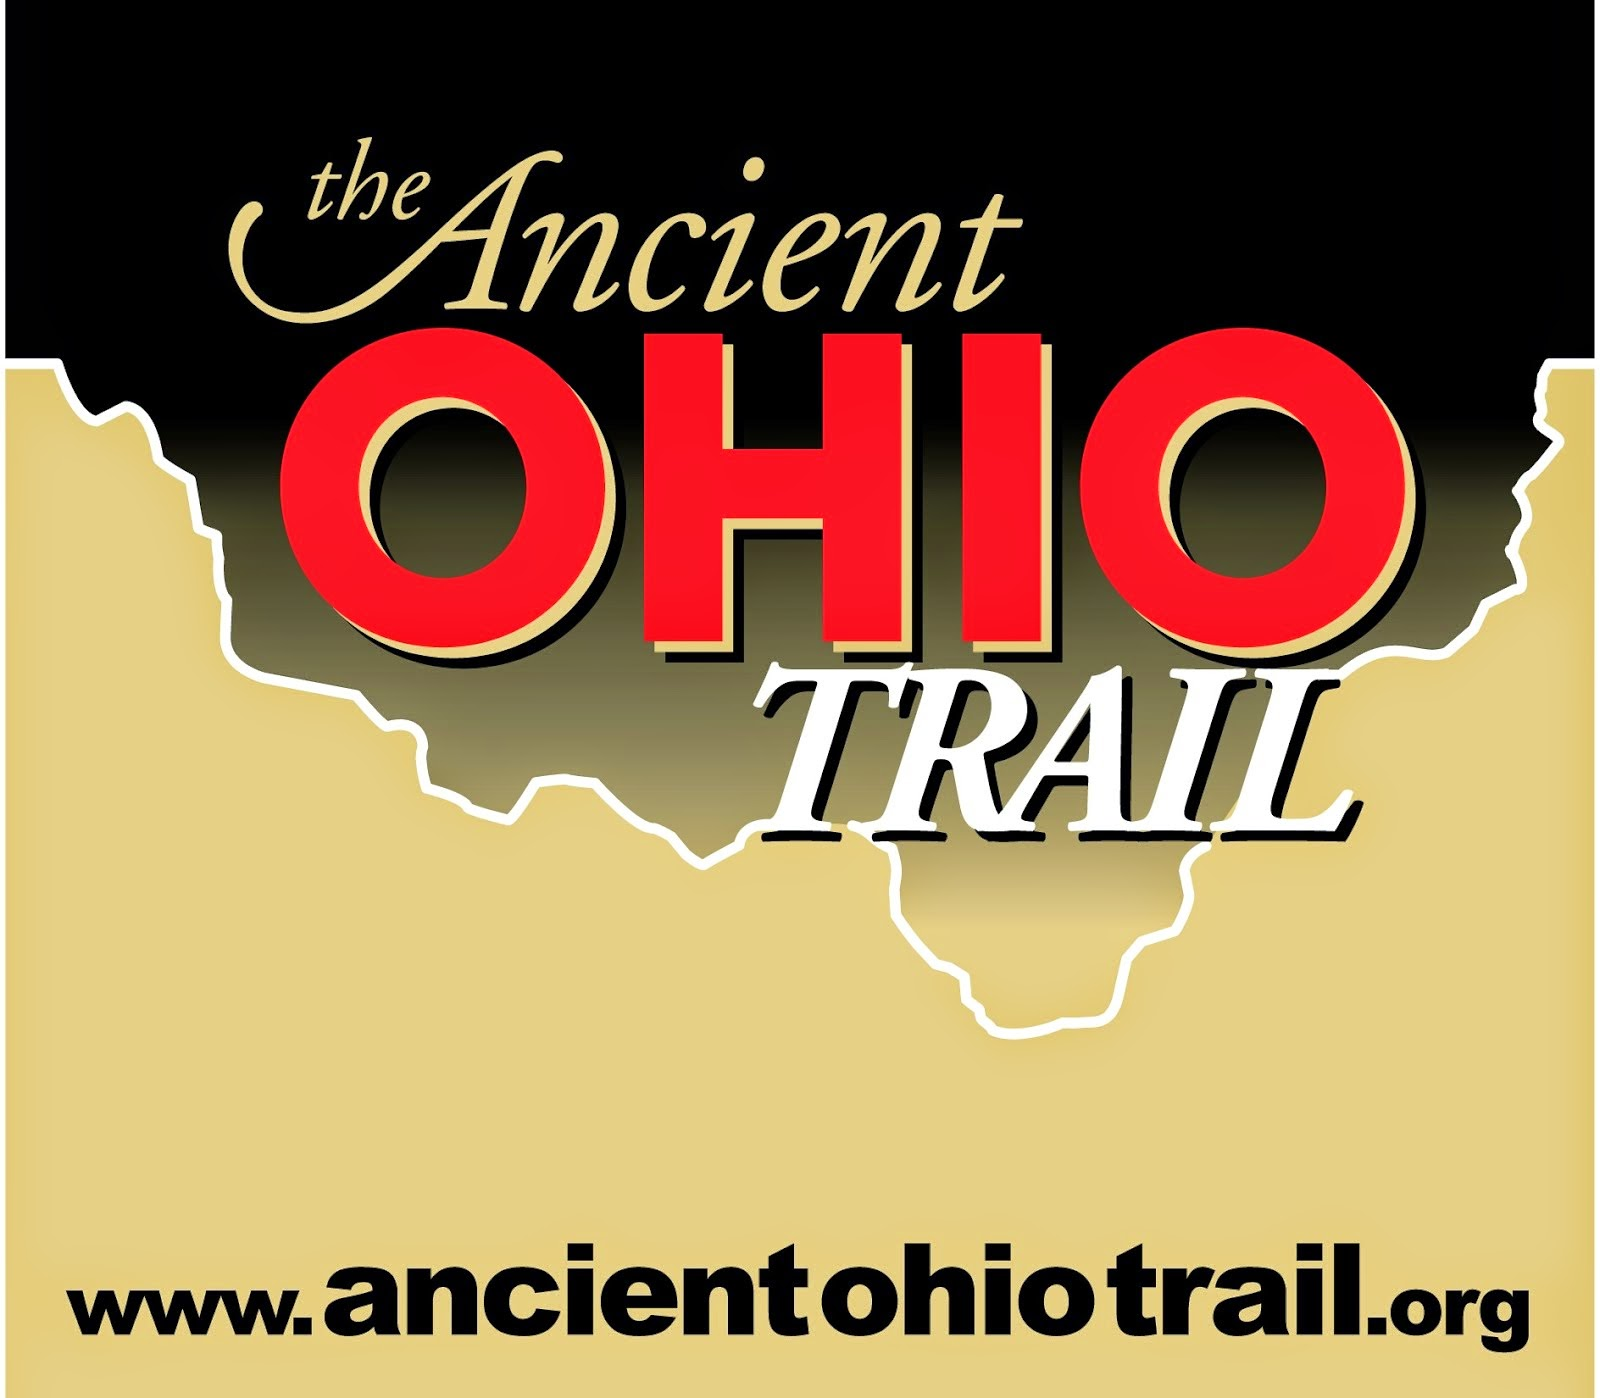 The Ancient Ohio Trail